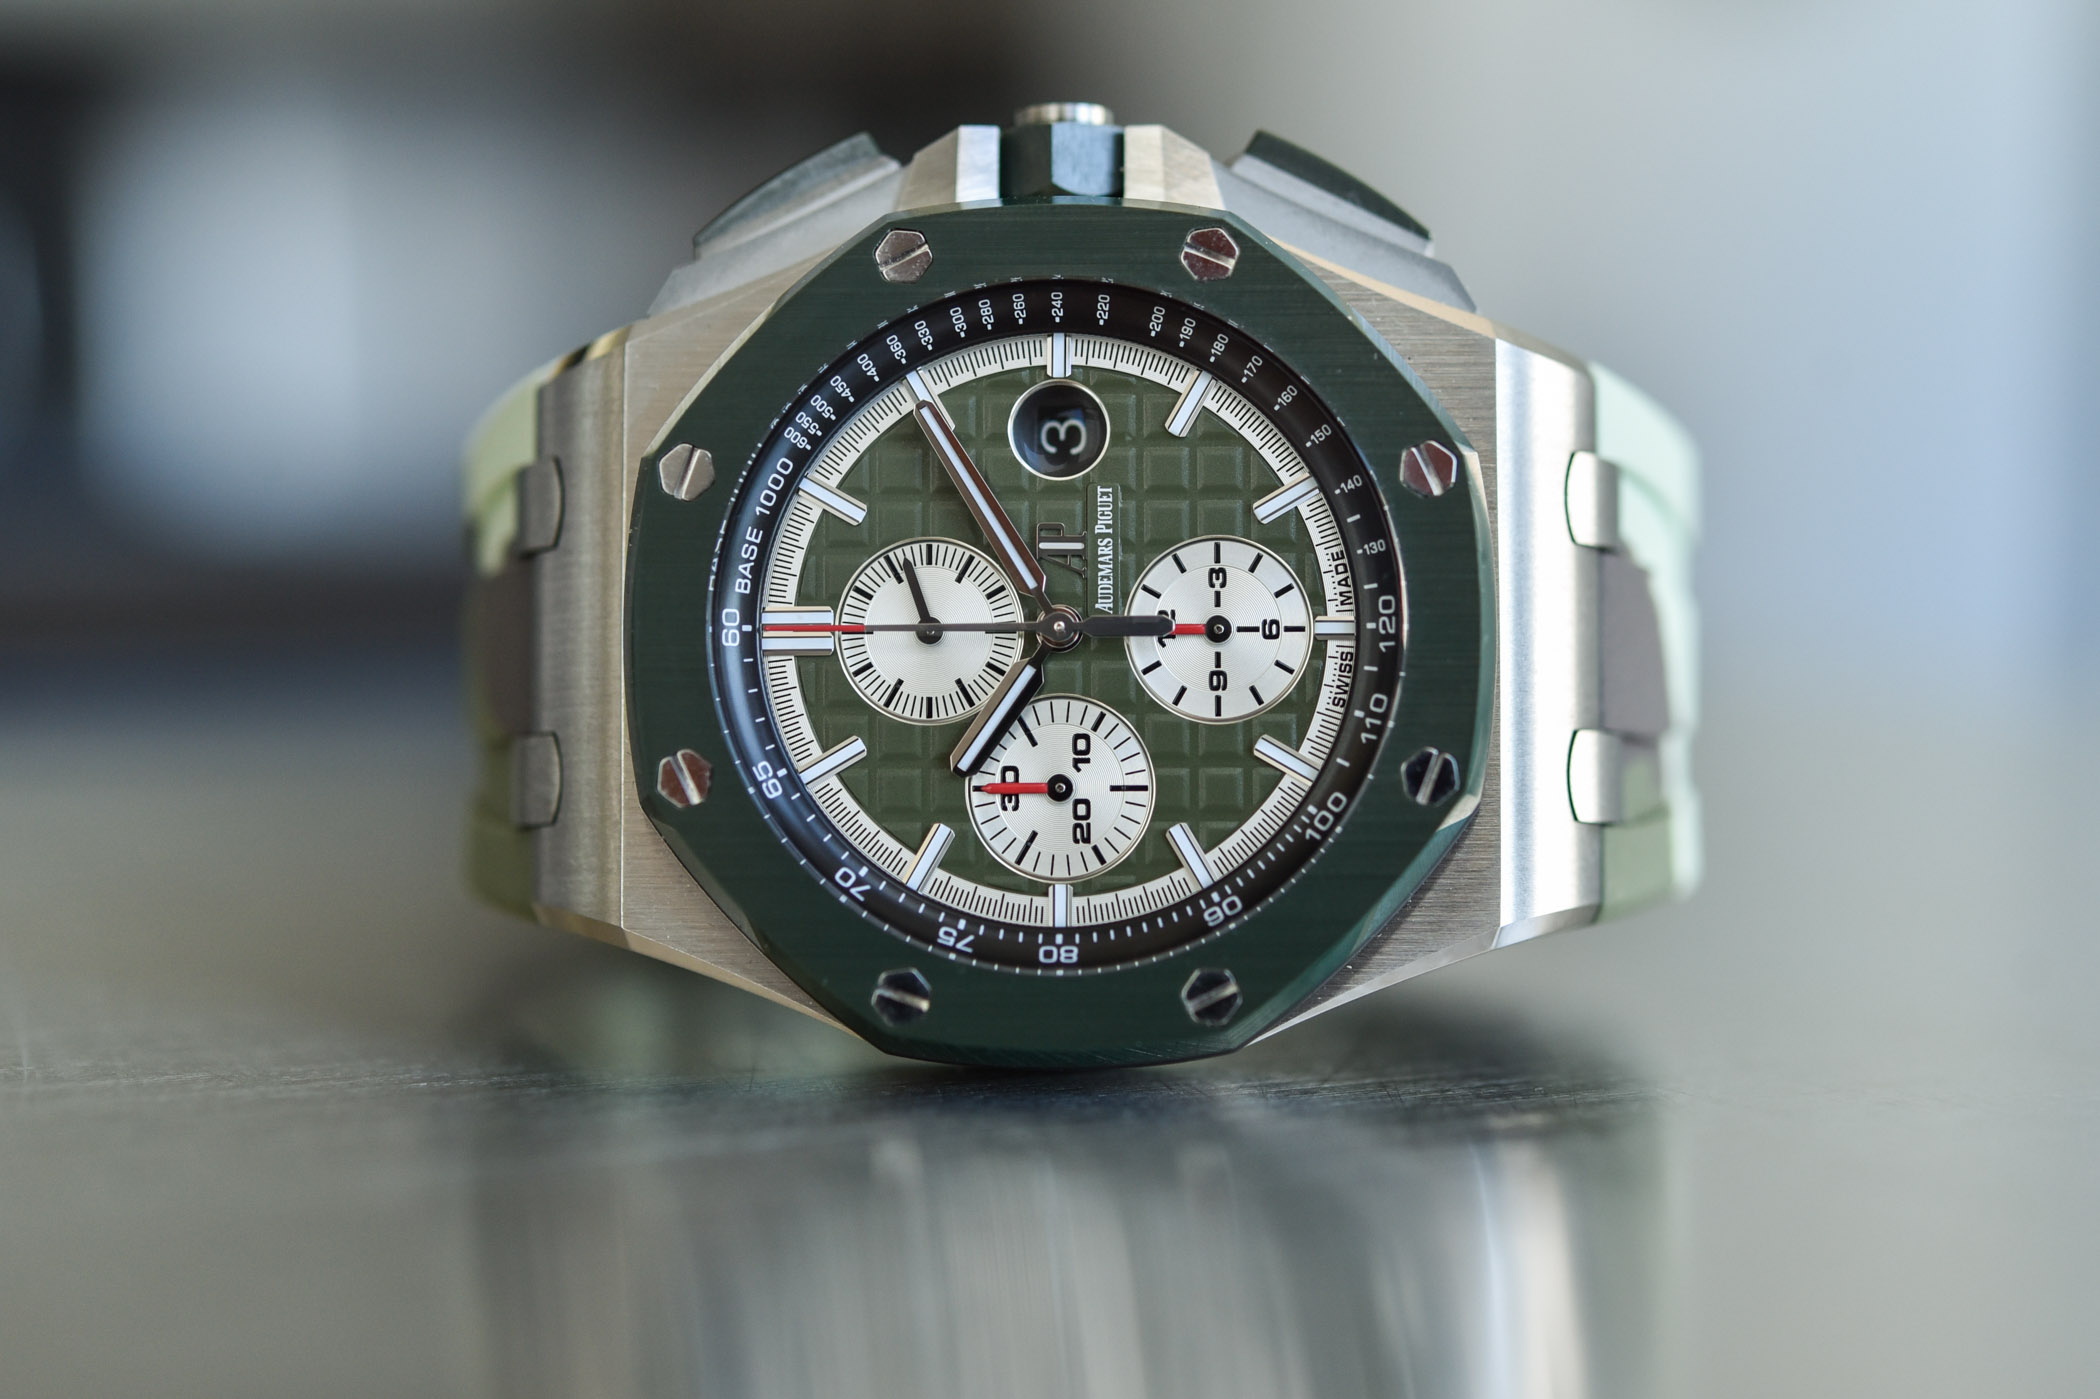 Audemars Piguet Royal Oak Offshore Selfwinding Chronograph 44mm Camo 26400SO - 1